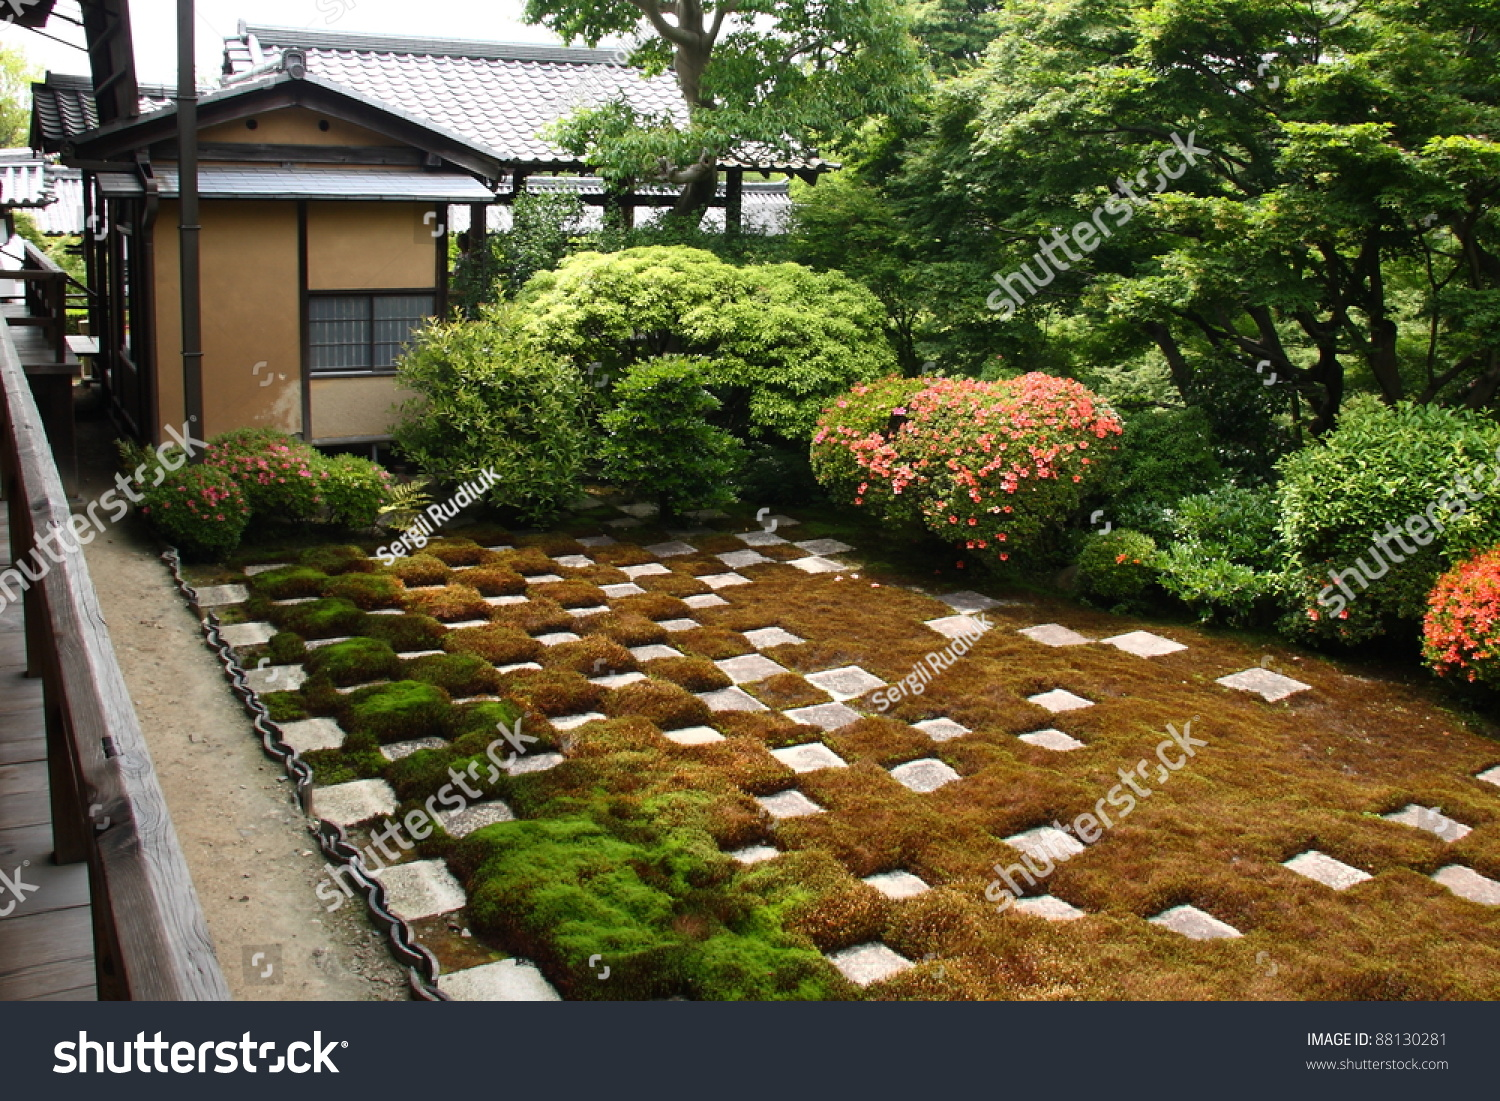 Japanese Zen Garden Square Cutted Stones Stock Photo (Edit Now ...